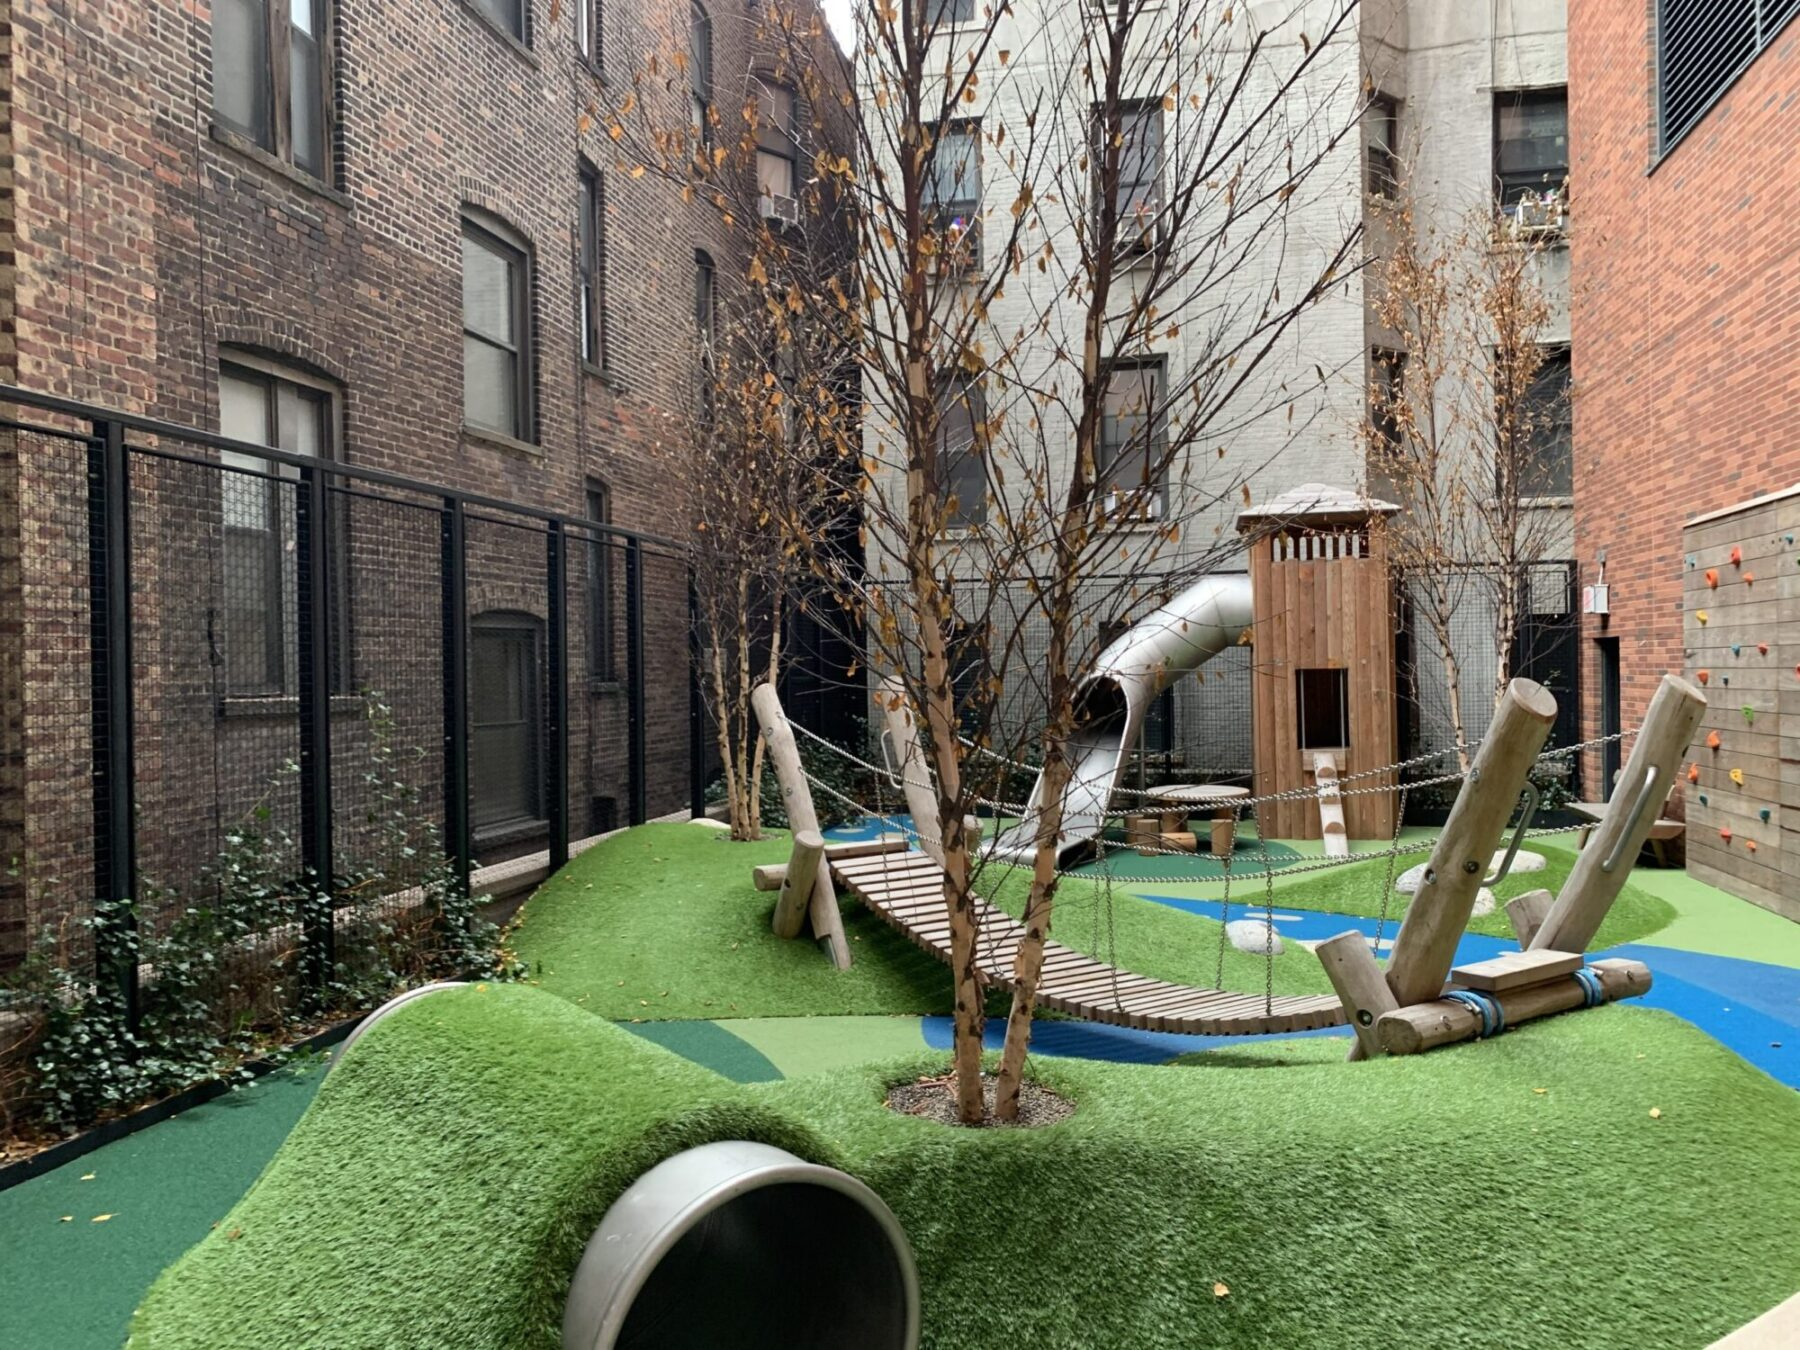 The Kent Rooftop Playground was one of the more challenging projects we completed this year as you will see in the photos. The Kent is a tailored collection of 3 to 5 bedroom condominium residences complimented by 3 levels of curated outdoor & indoor spaces and amenities. Art-deco design by award winning architects Beyer, Blinder & Belle and interior designer Alexandria Champalimaud. We installed the SYNLawn on the 2nd floor 'Camp Kent' where celebrities like Hoda Kotb live and take their children for outdoor recreation time for a fun and environmentally safe adventure